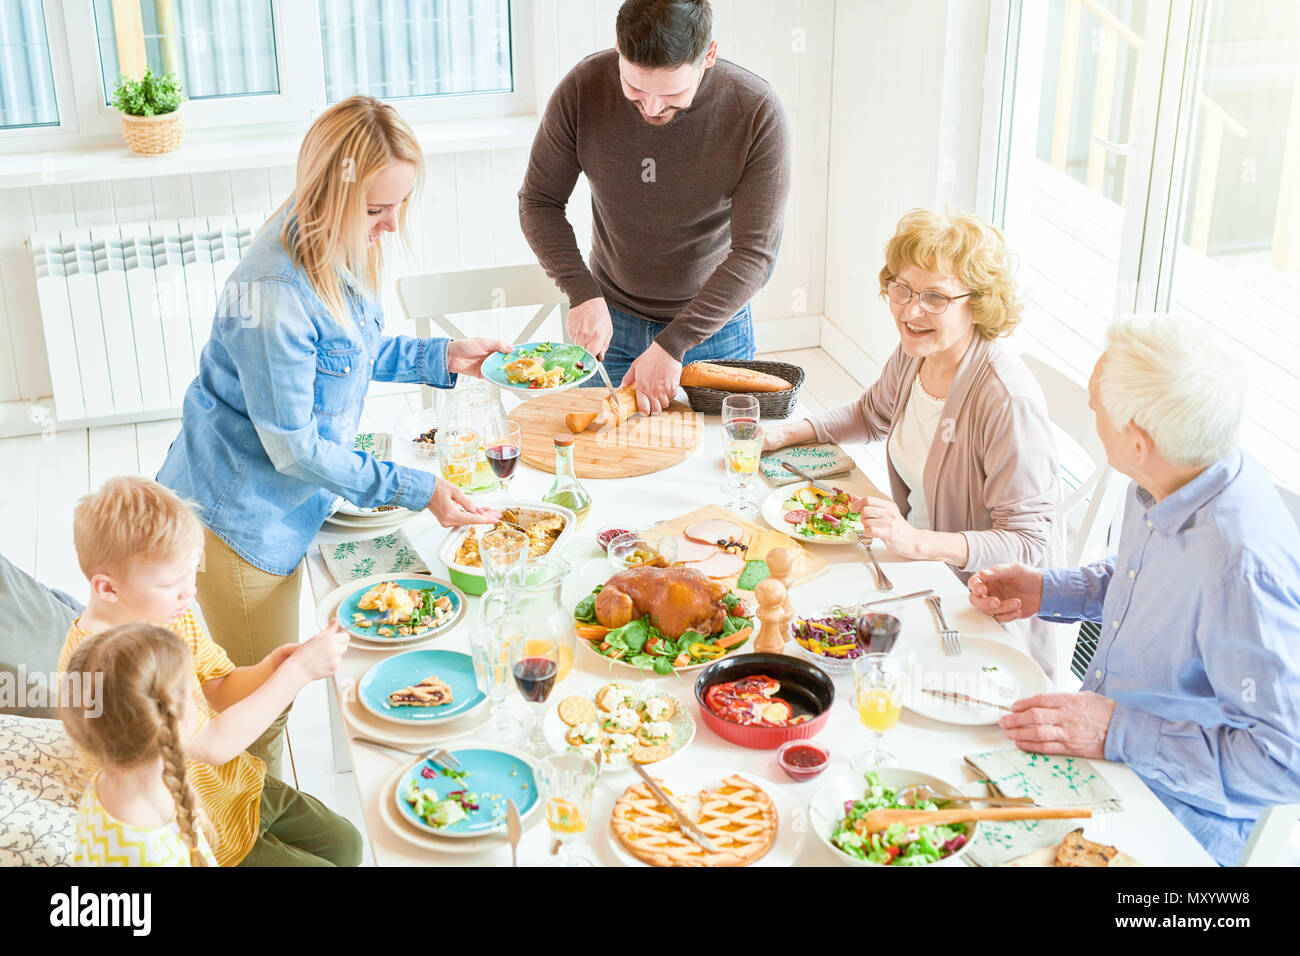 High angle portrait of big happy family enjoying dinner together sitting round festive table with delicious dishes,  young woman serving food during   - Stock Image